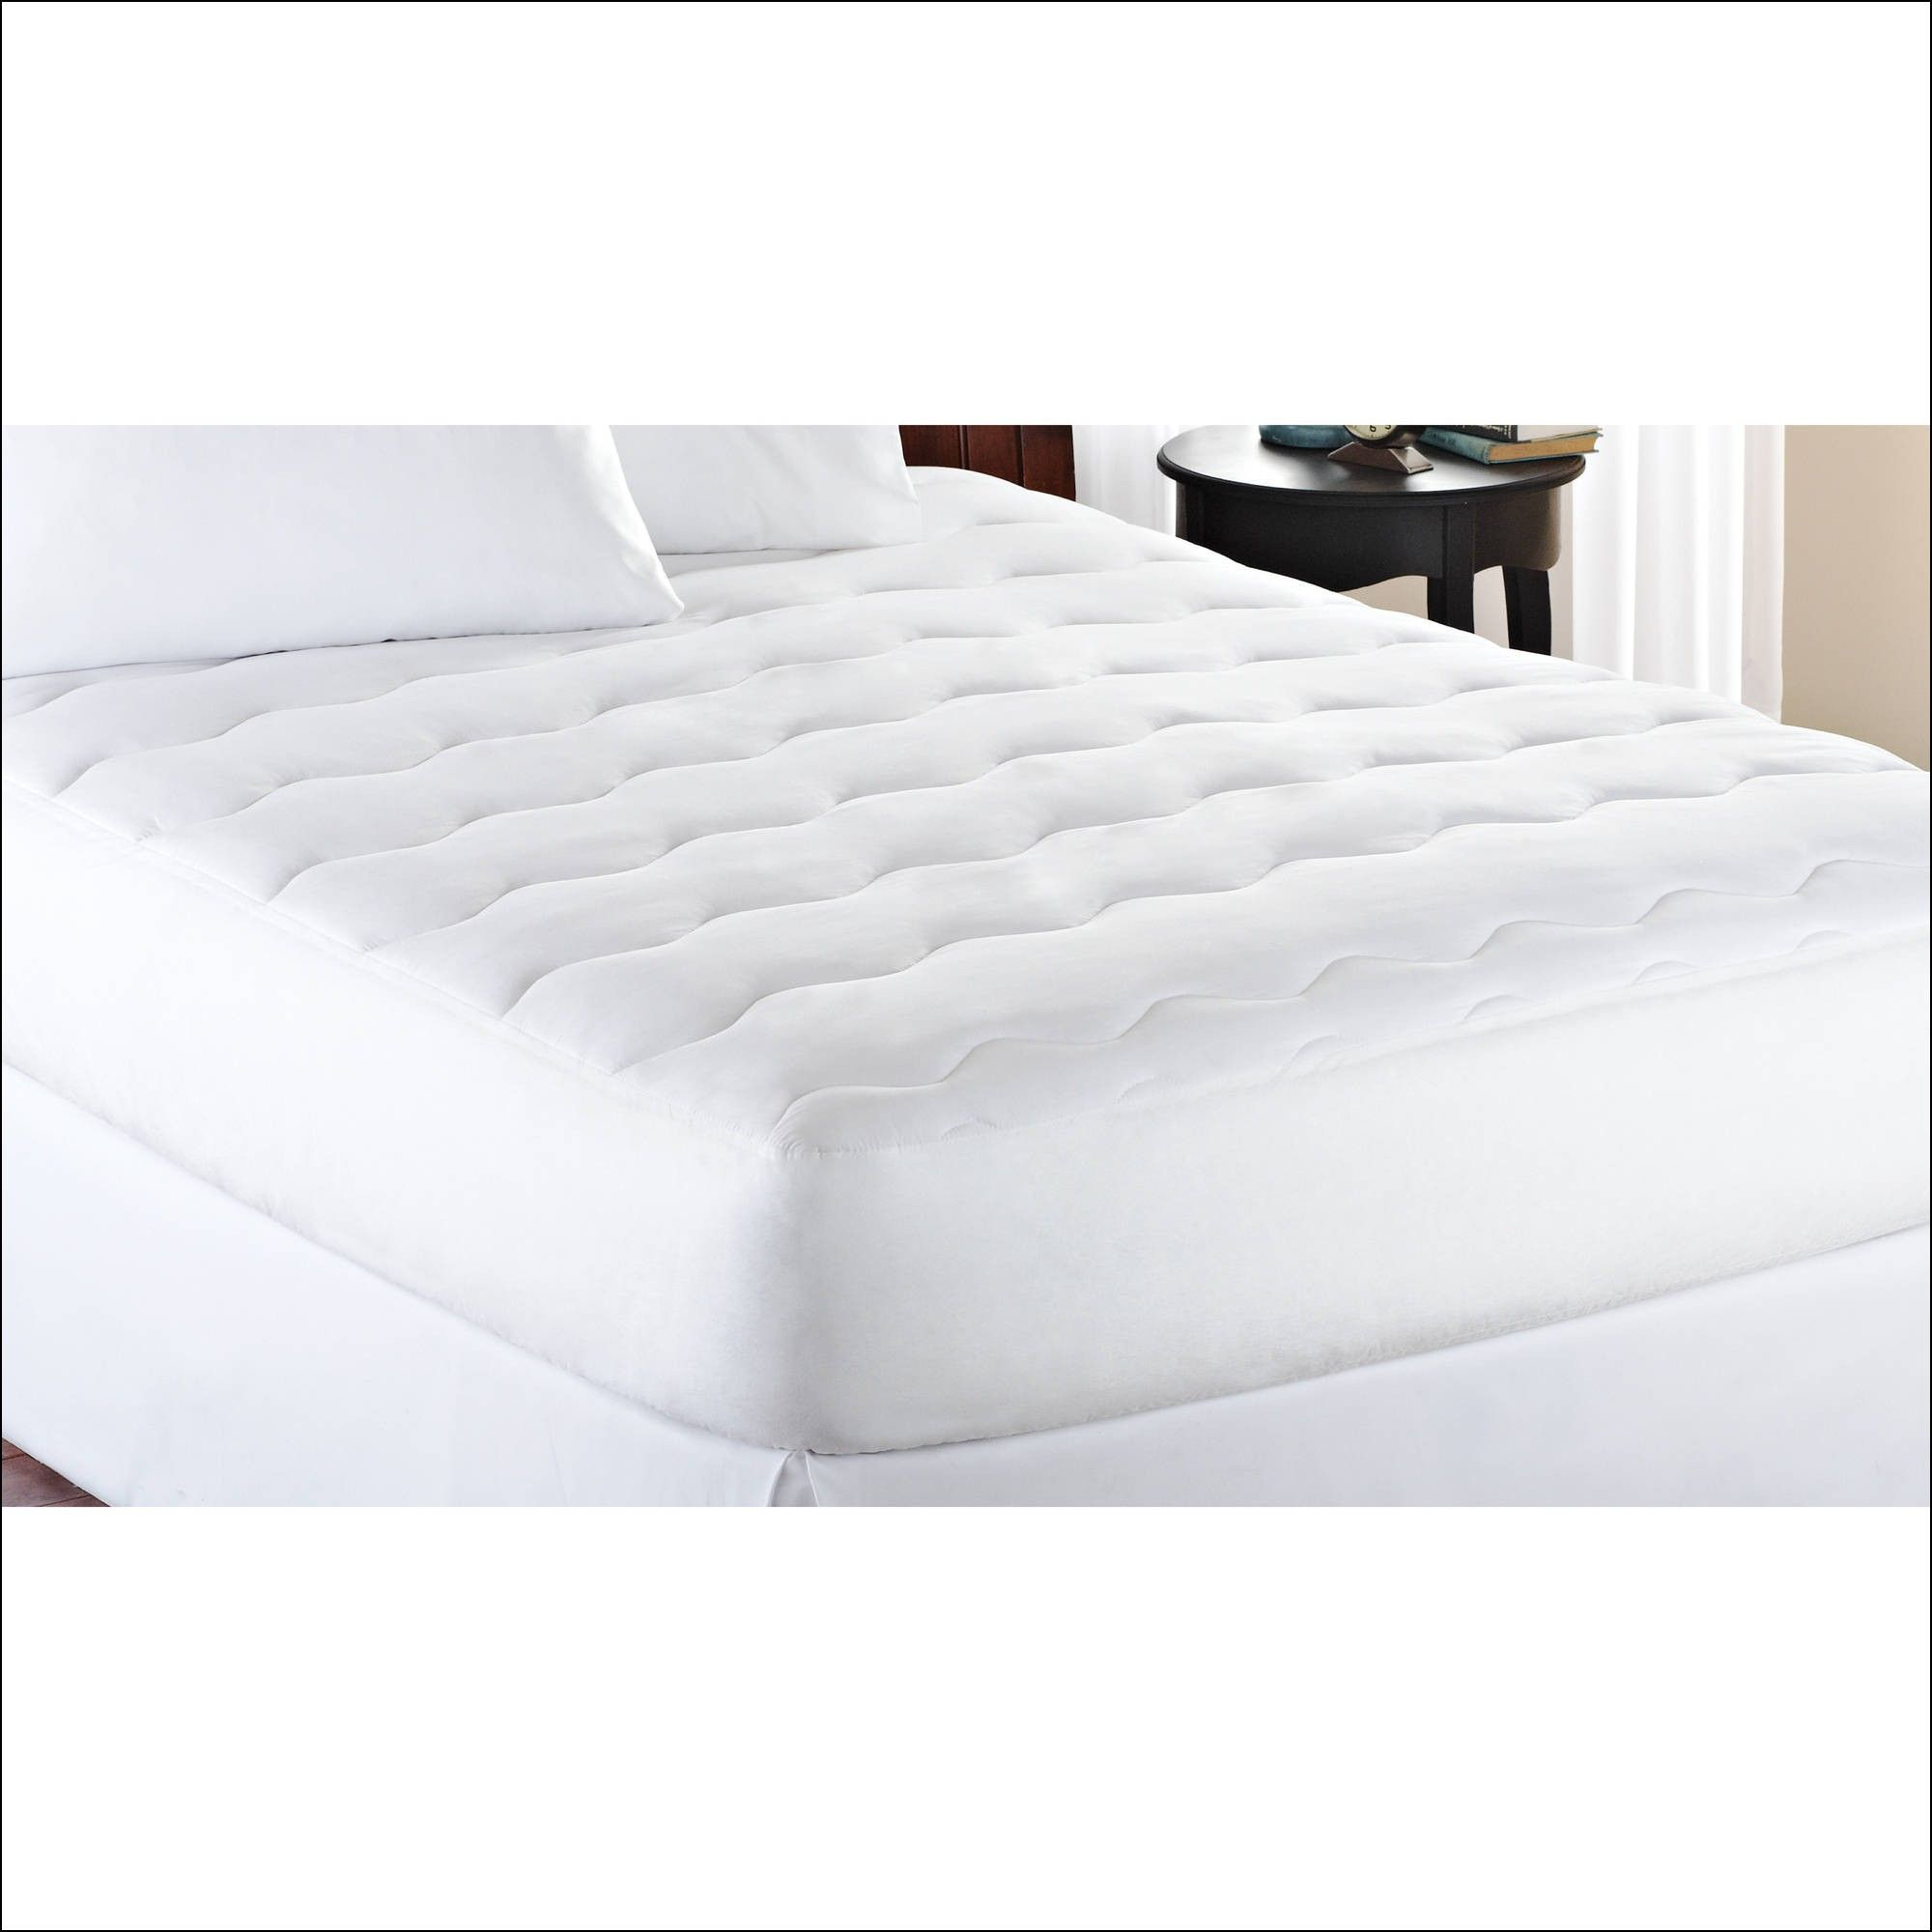 Pillow Top Mattress Covers Alluring Thick Pillow Top Mattress Pad  Mattress Ideas  Pinterest  Pillow